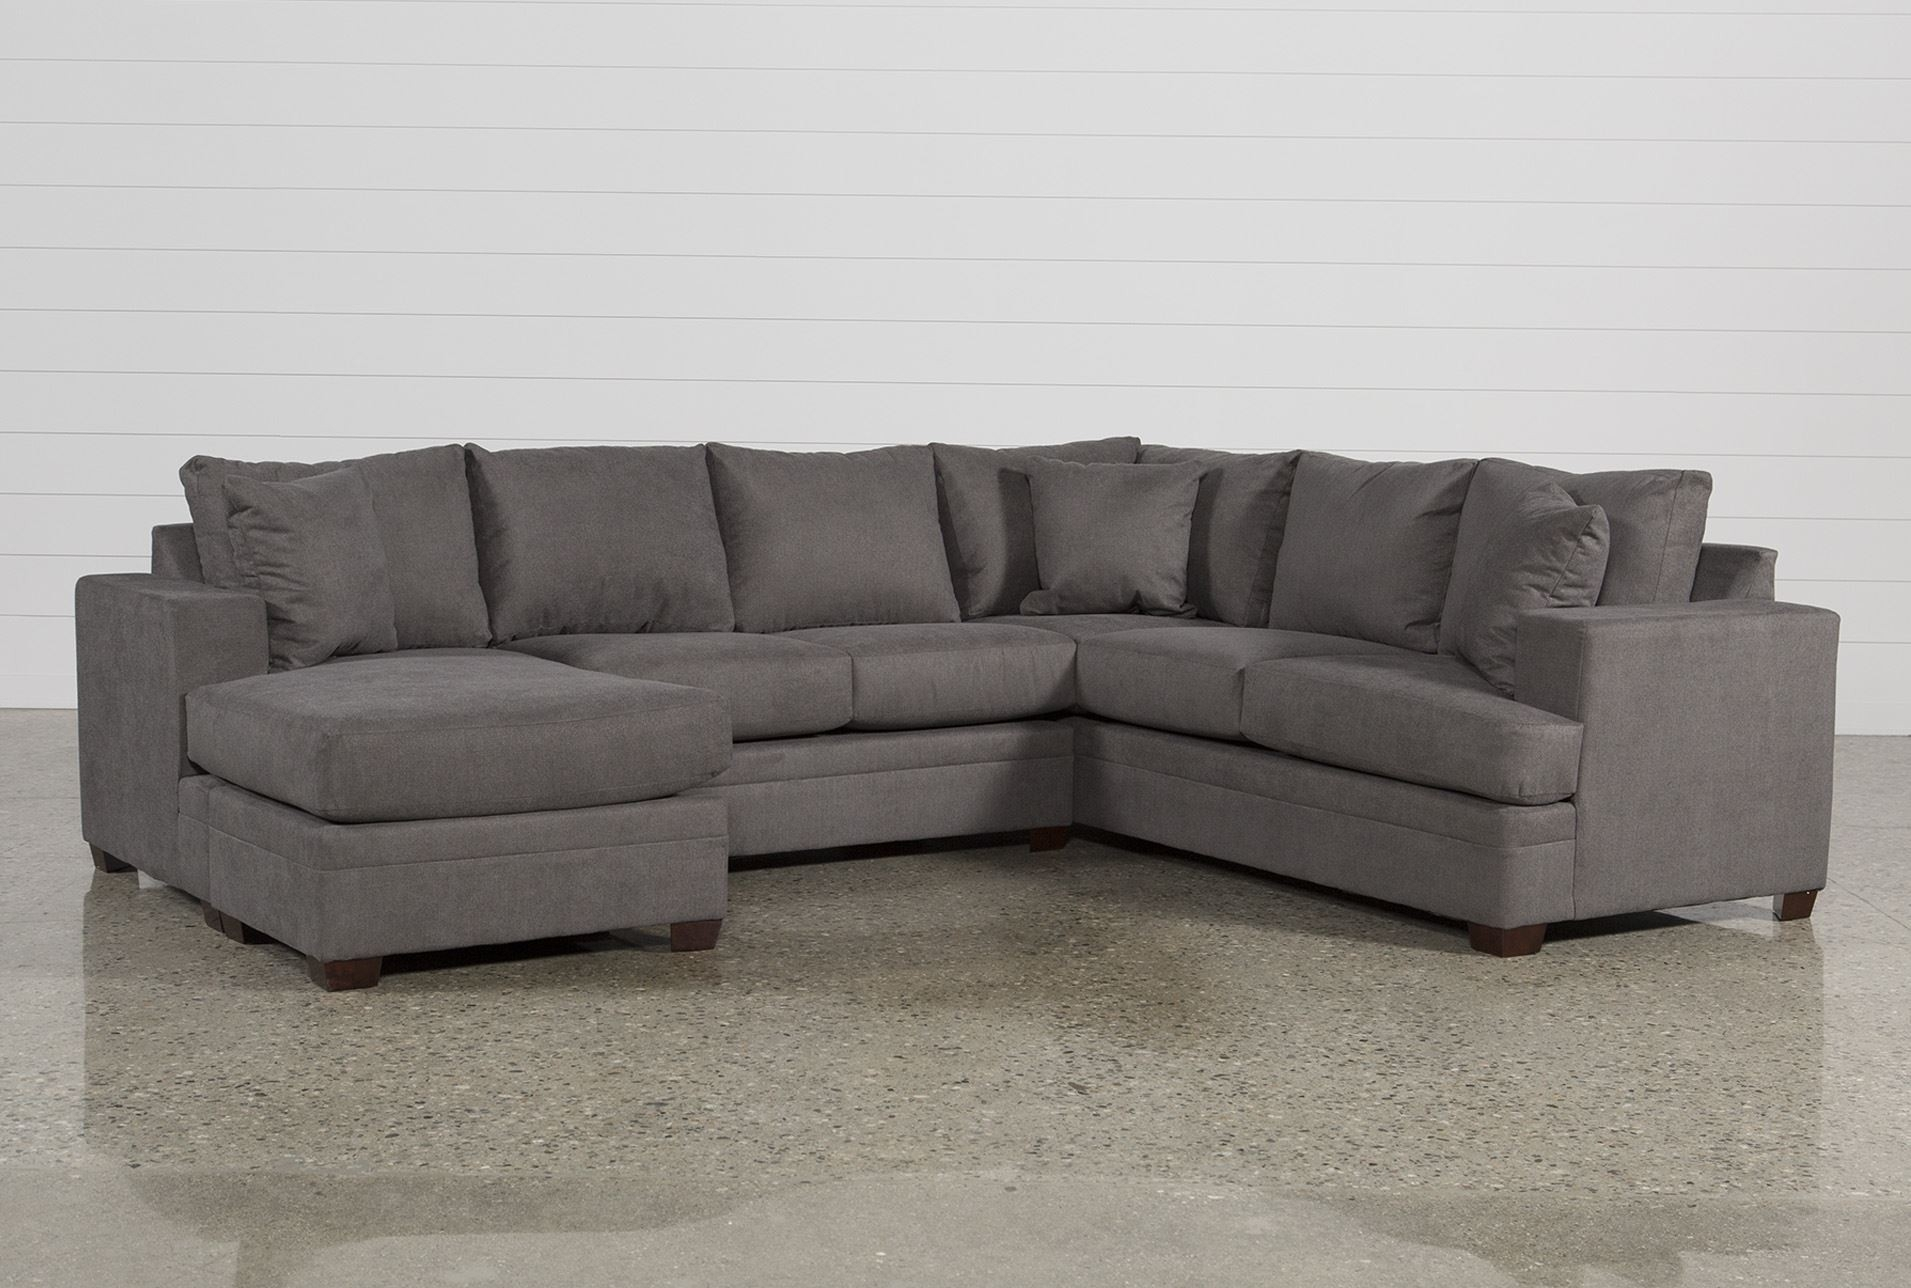 Living Spaces Leather Sectional - Implantologiabogota.co throughout Tatum Dark Grey 2 Piece Sectionals With Raf Chaise (Image 13 of 30)